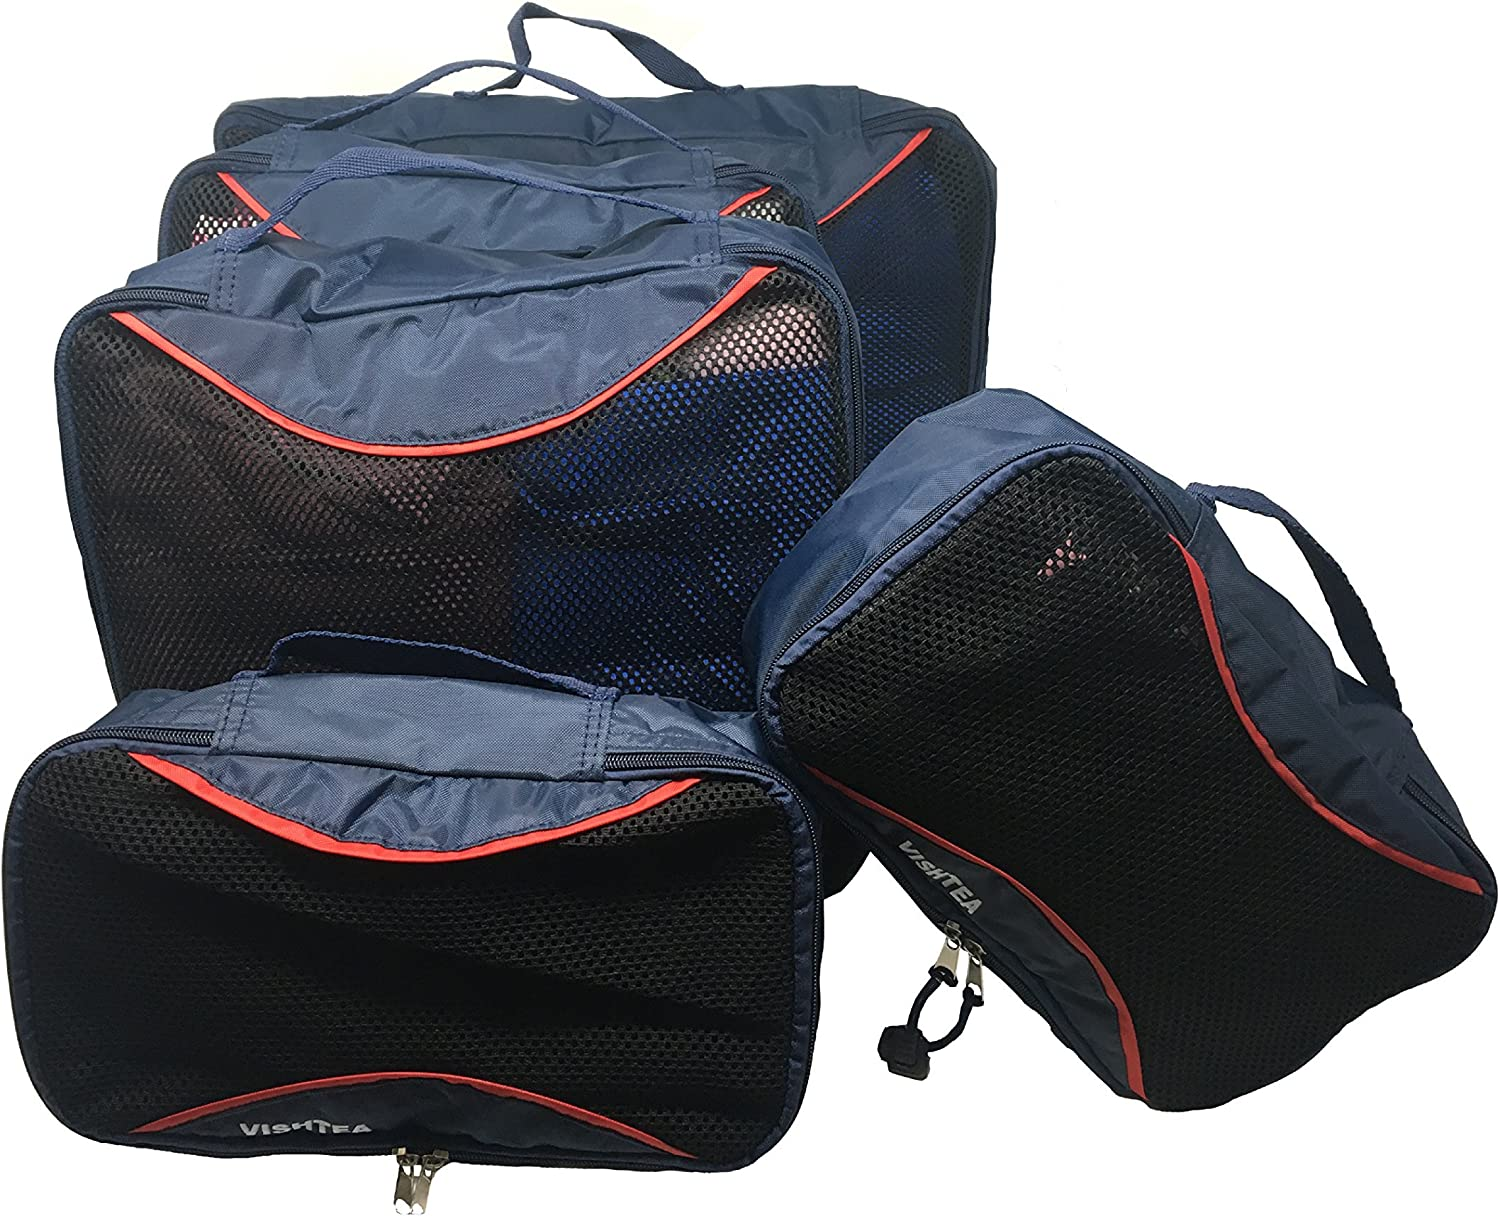 2xS//2xM//1xL Luggage Travel Organizers Packing Cubes 5 Set 5Pack, Navy Blue